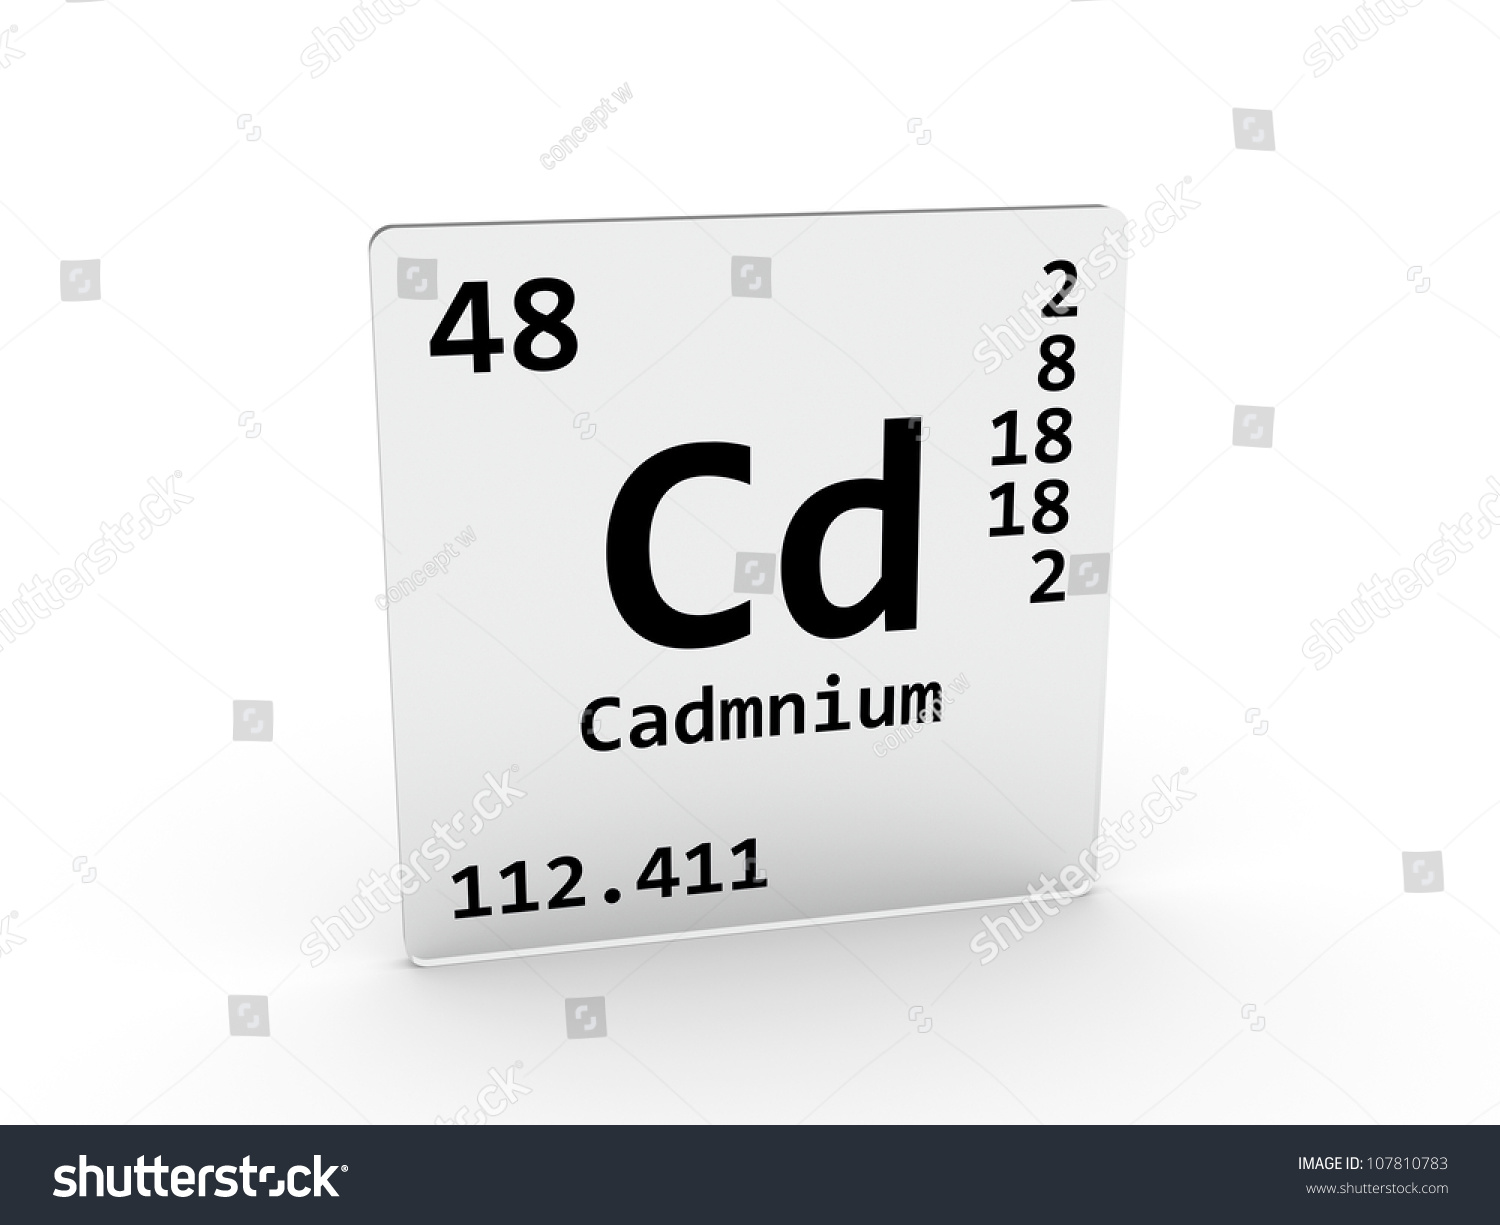 Cadmium Symbol - Cd - Element Of The Periodic Table Stock ...